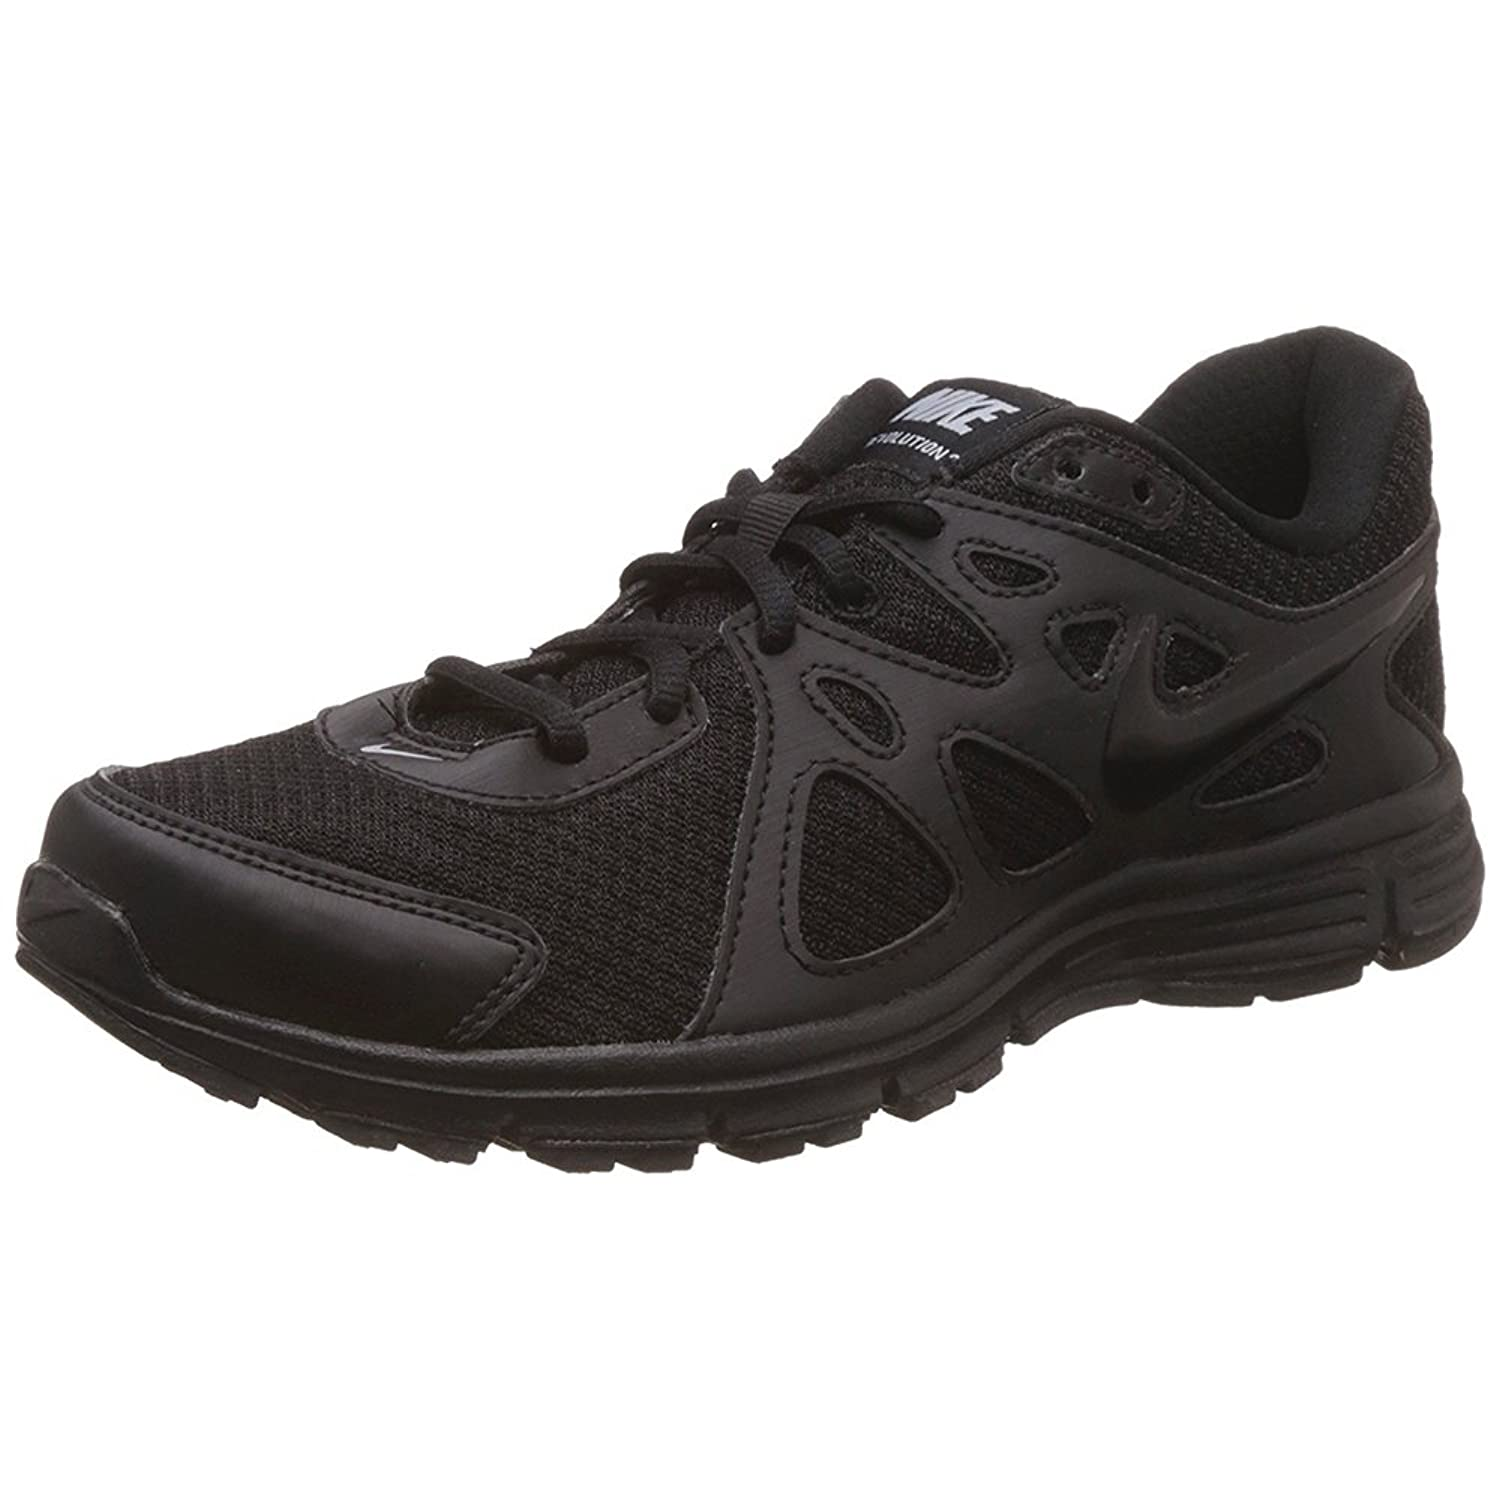 Nike Black School Shoes Kids Range (3 to 11 Years)  Buy Online at ... a2f1662b2